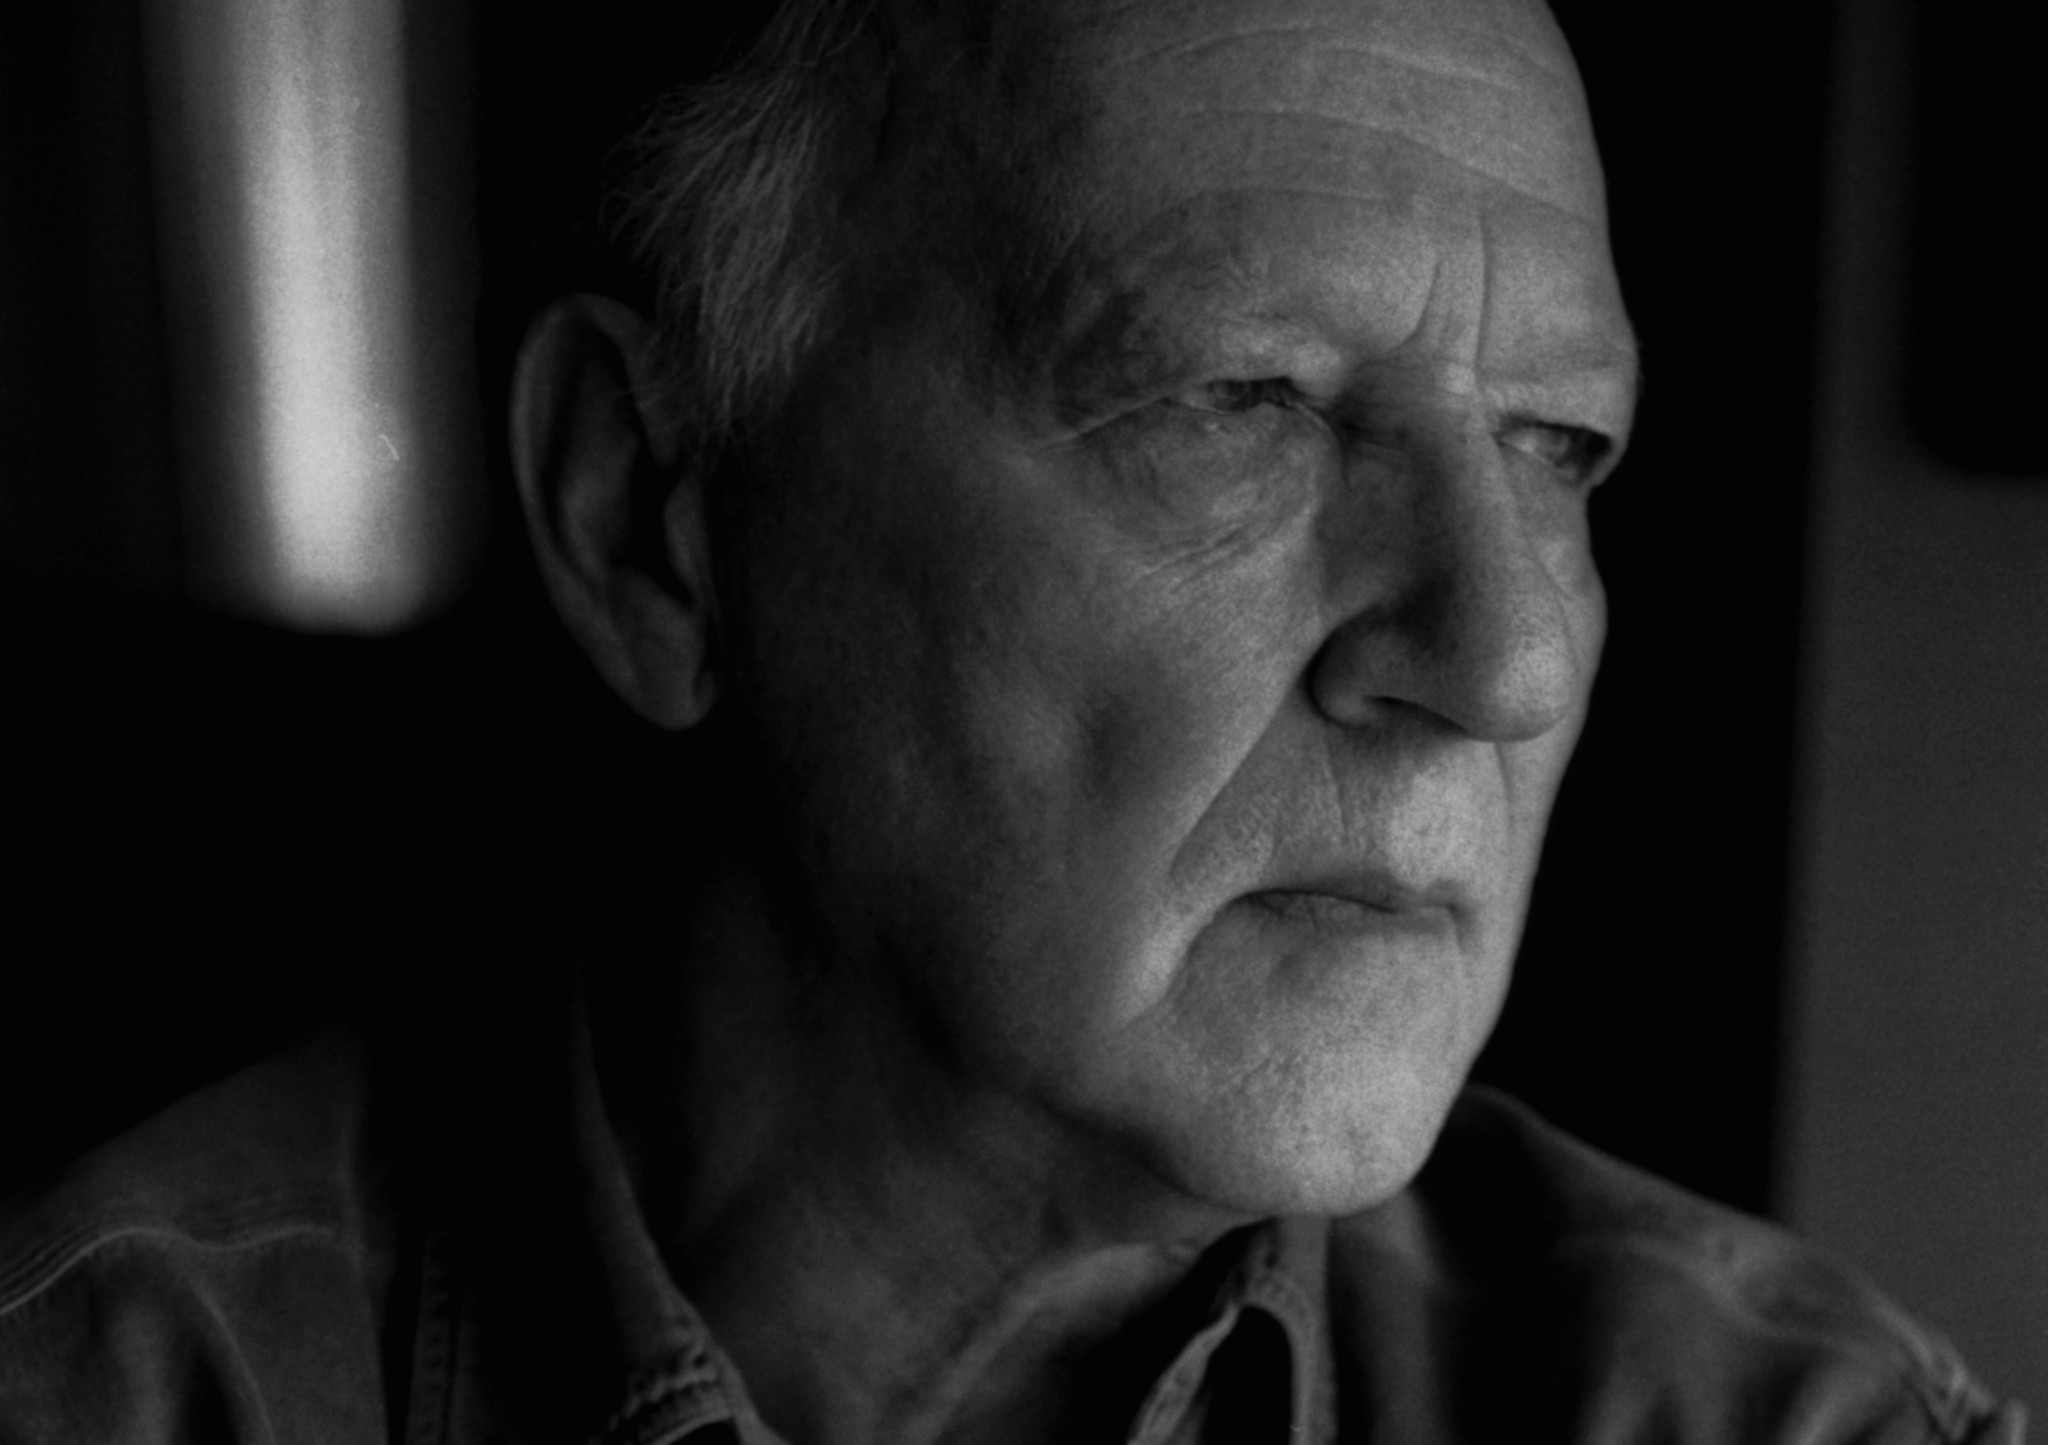 Werner Herzog, director of LO AND BEHOLD, a Magnolia Pictures release. Photo courtesy of Magnolia Pictures.